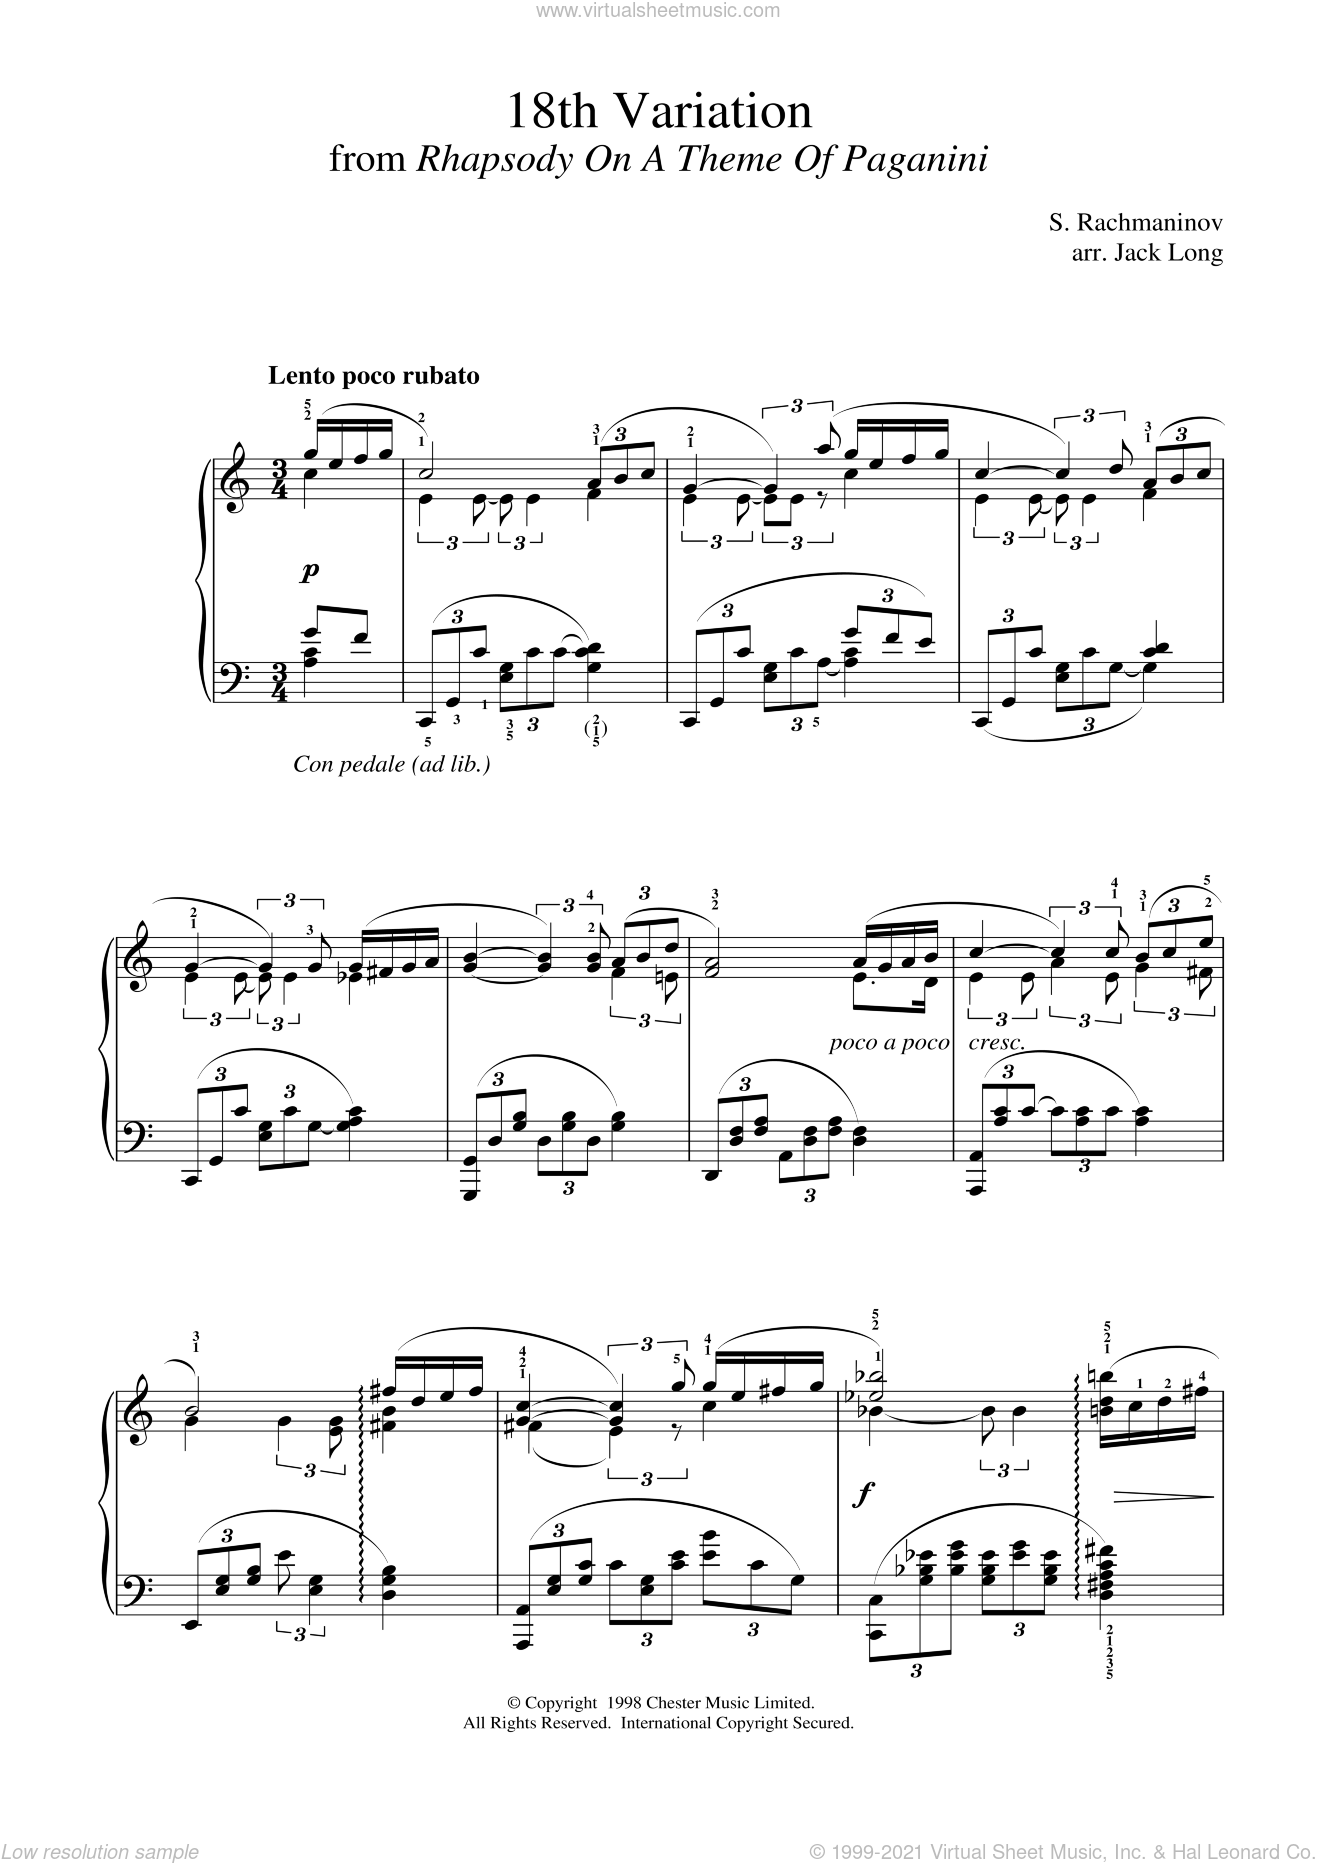 18th Variation sheet music for piano solo by Serjeij Rachmaninoff, classical score, intermediate skill level